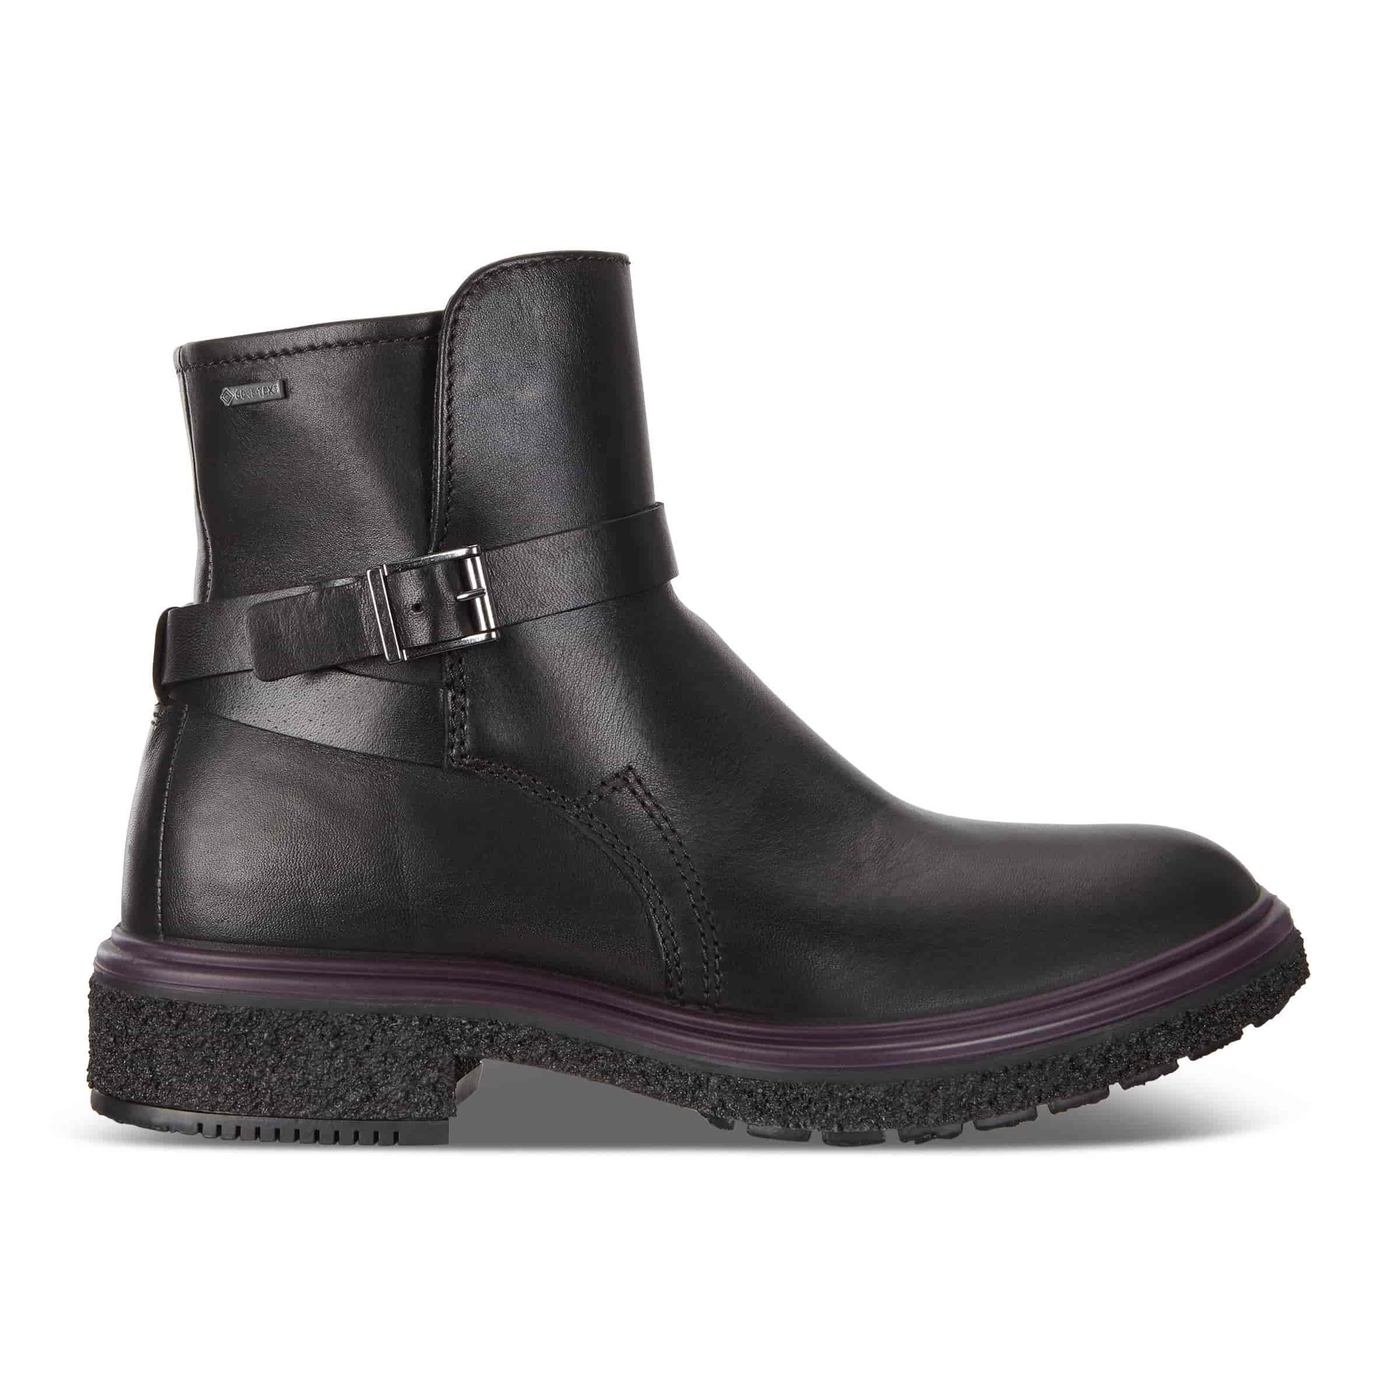 ecco black leather ankle boot